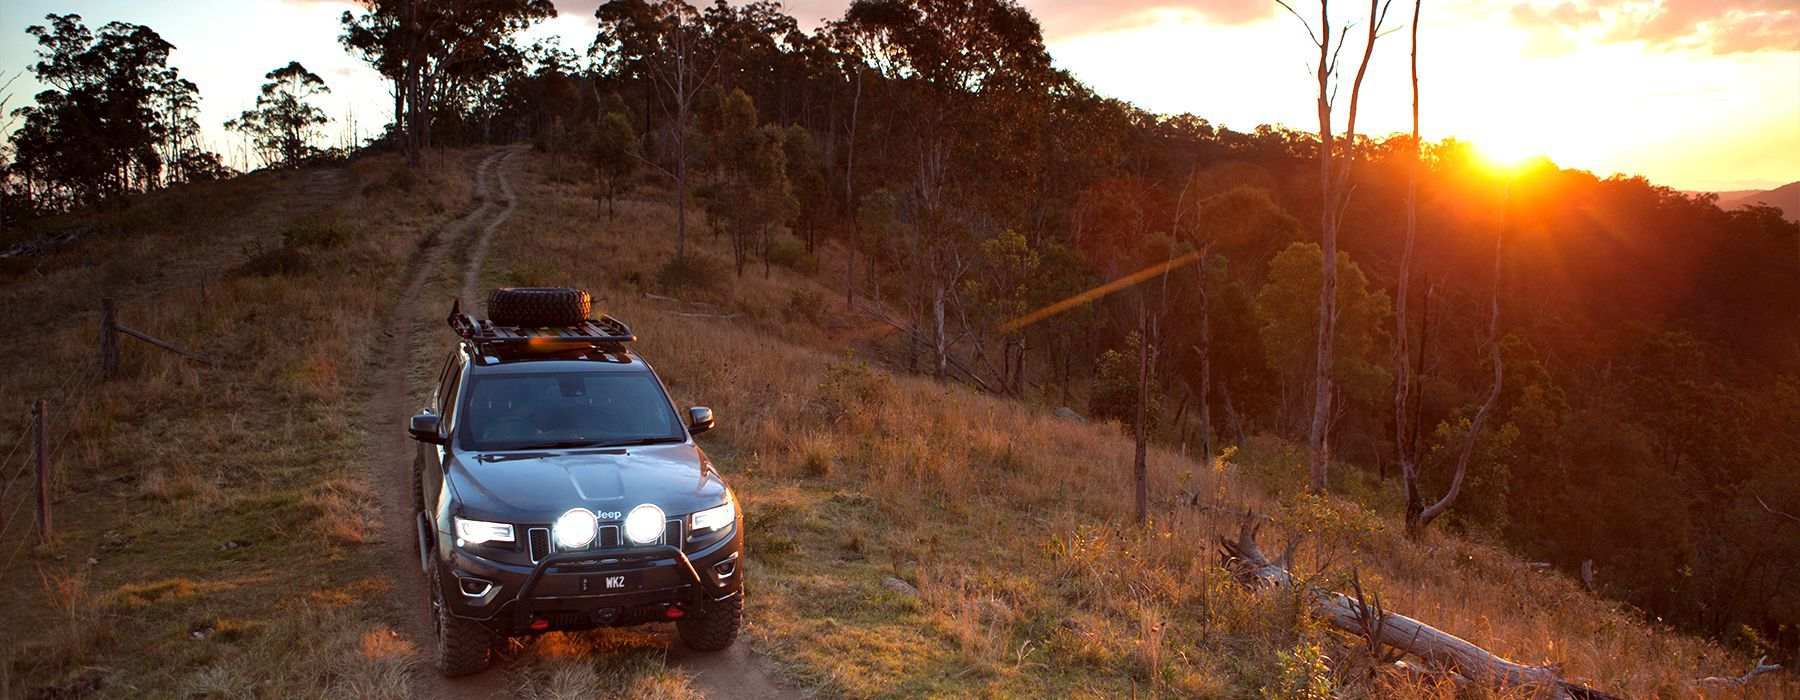 Jeep Road - Conglomerate State Forest // NSW // Australia